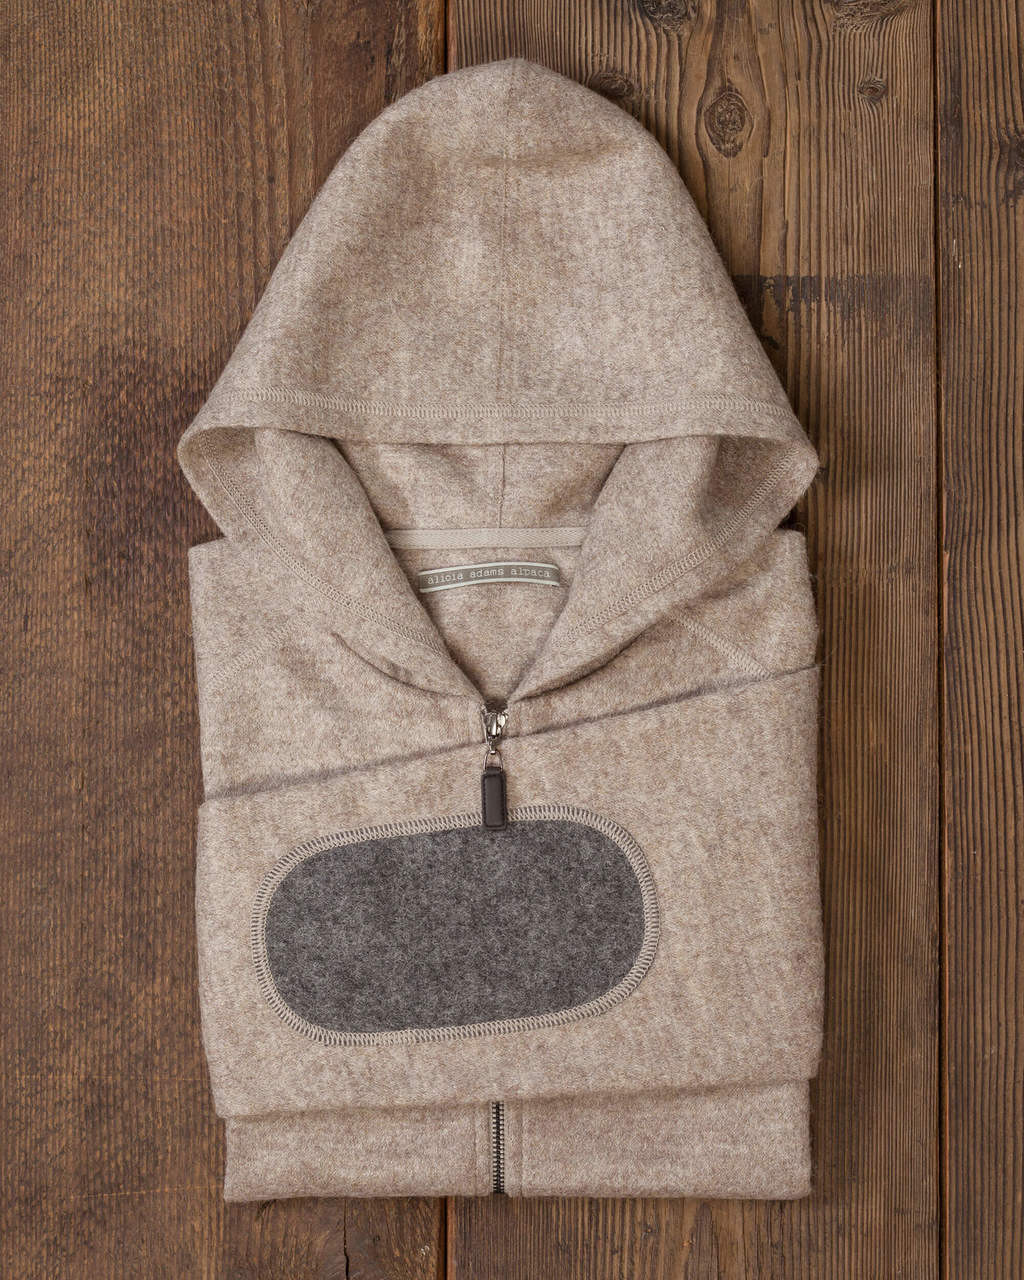 Alicia Adams Alpaca Verbier Zip Up For Women, alpaca sweater hoodie for women, alpaca sweater womens, light taupe tan alpaca zip up hoodie